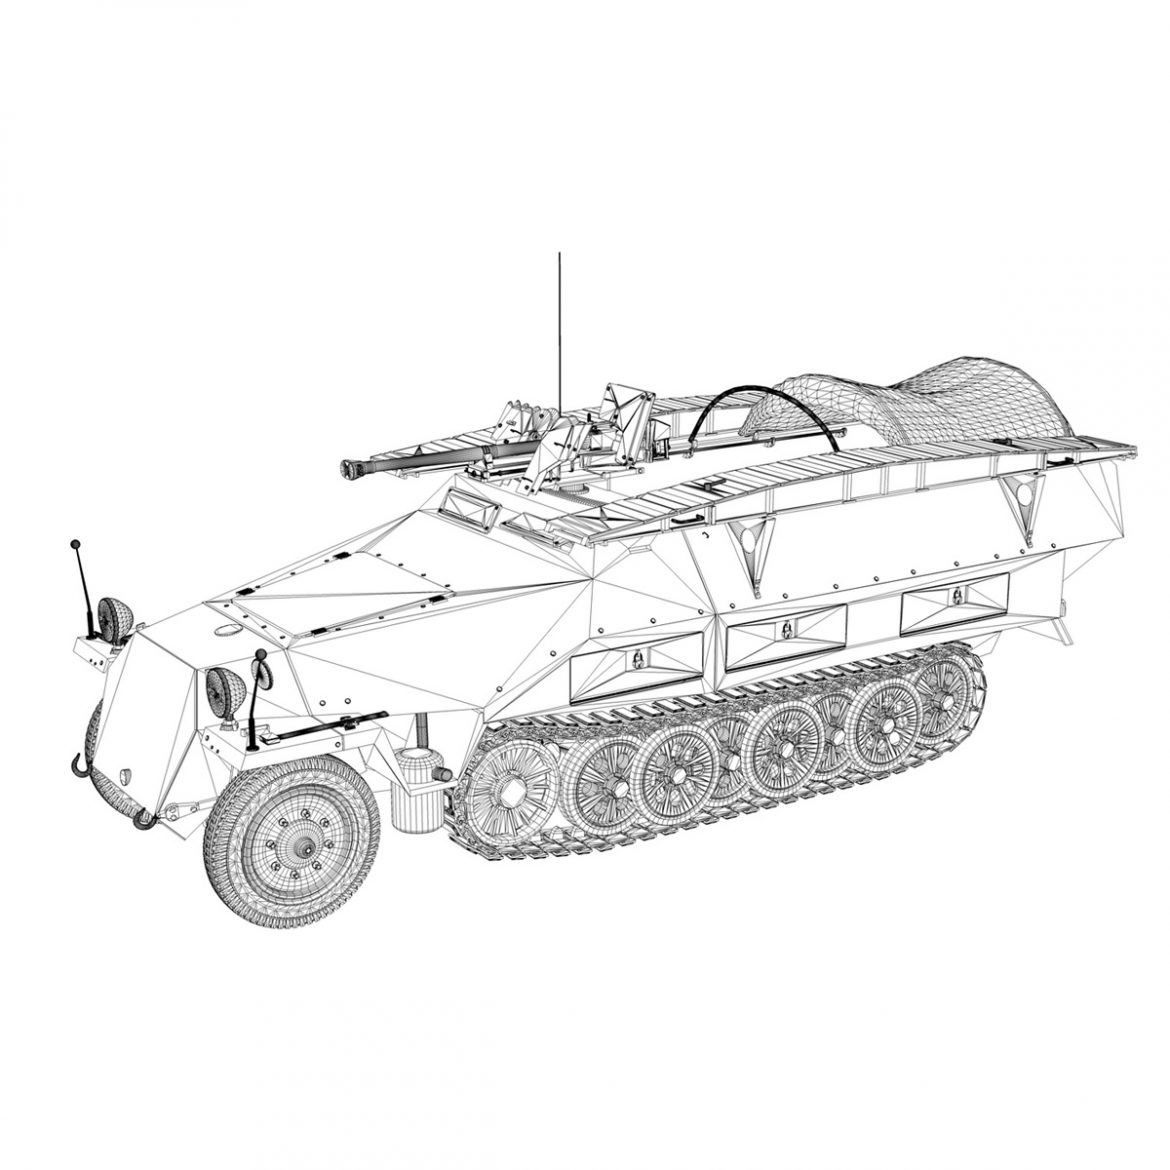 sd.kfz 251/7 ausf.d – assault engineer vehicle 3d model 3ds fbx c4d lwo obj 299583